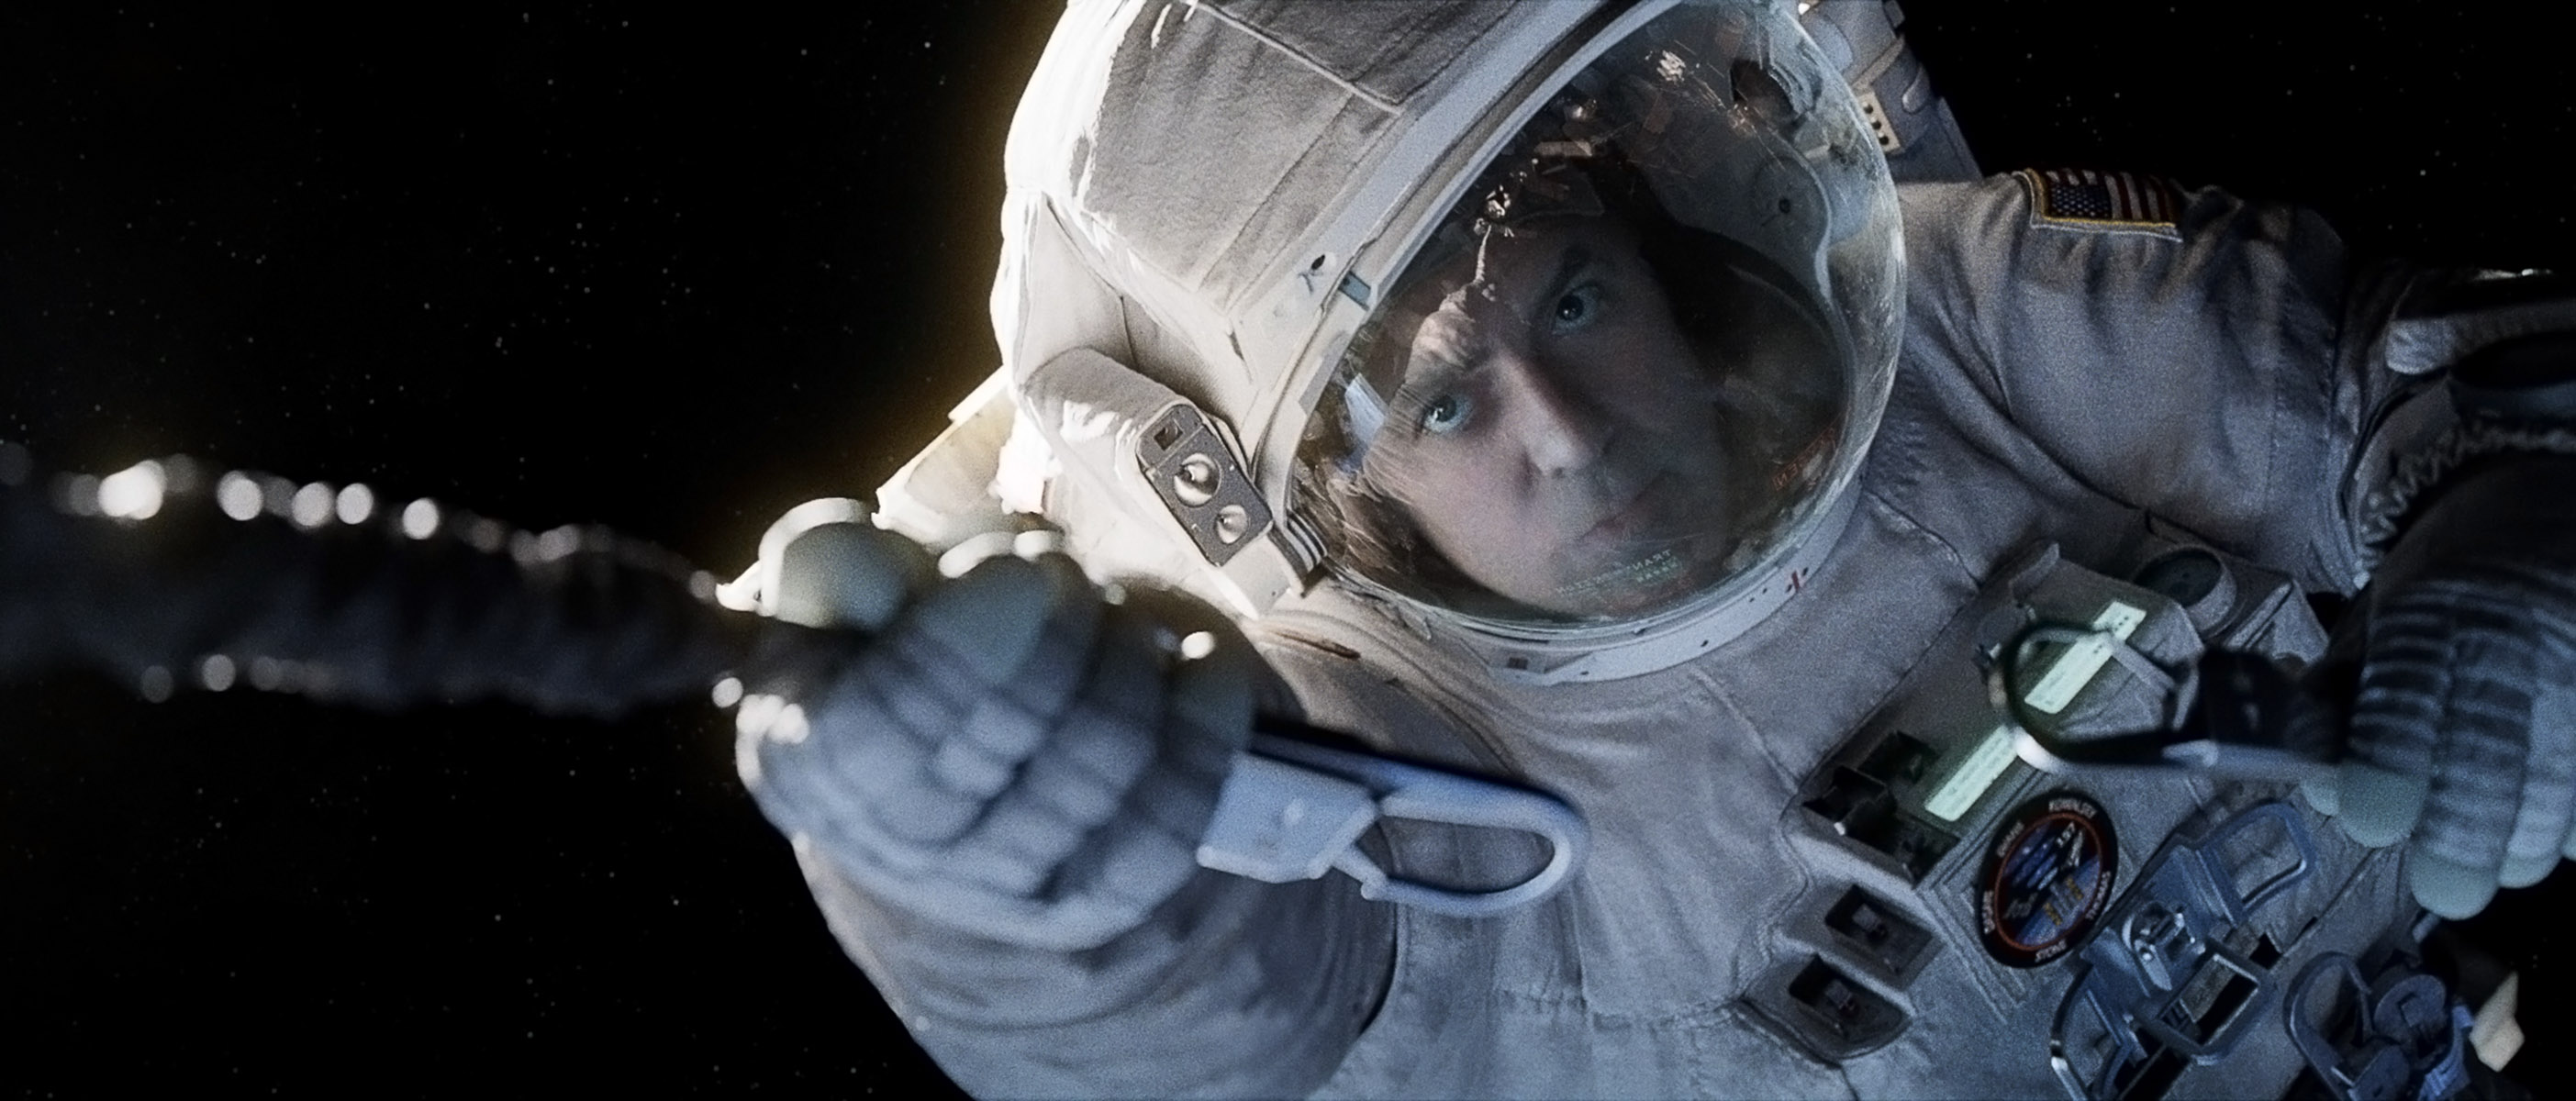 Astrophysicist Questions Science of New Movie 'Gravity' via Twitter